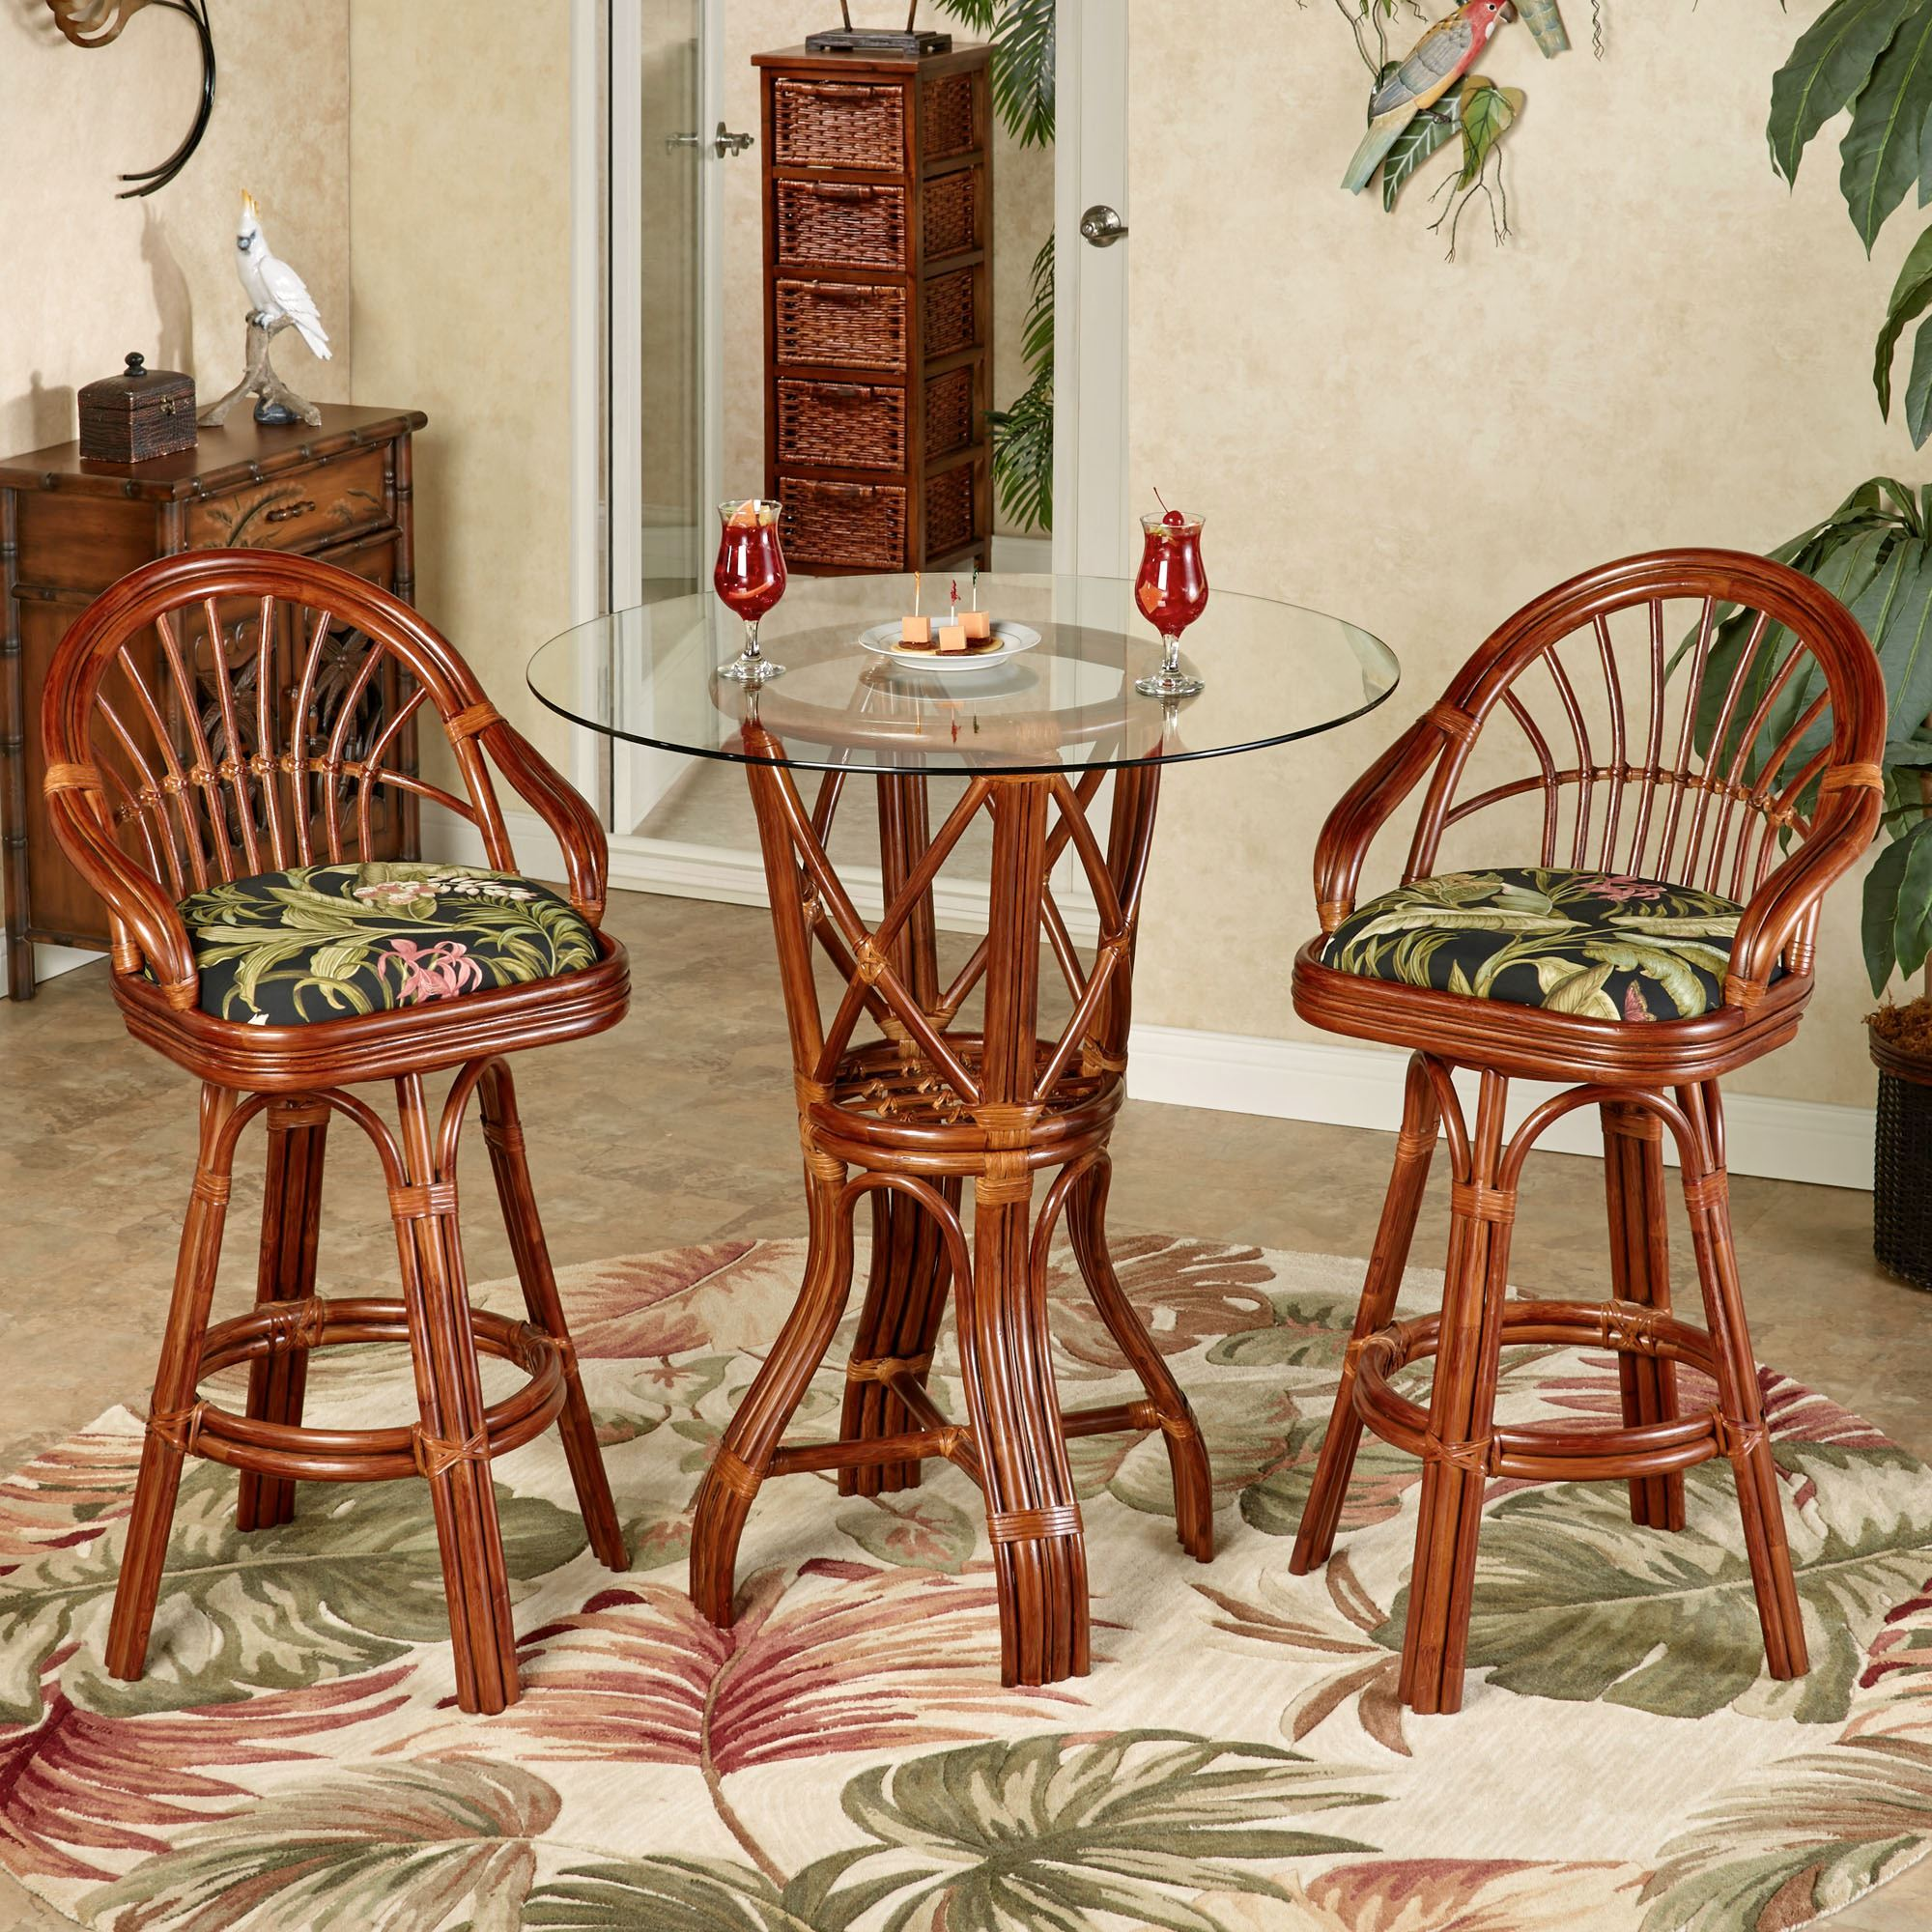 Leikela Bar Table with Two Stools Wailea Coast Set of Three & Leikela Wailea Coast Tropical Bistro Furniture Set